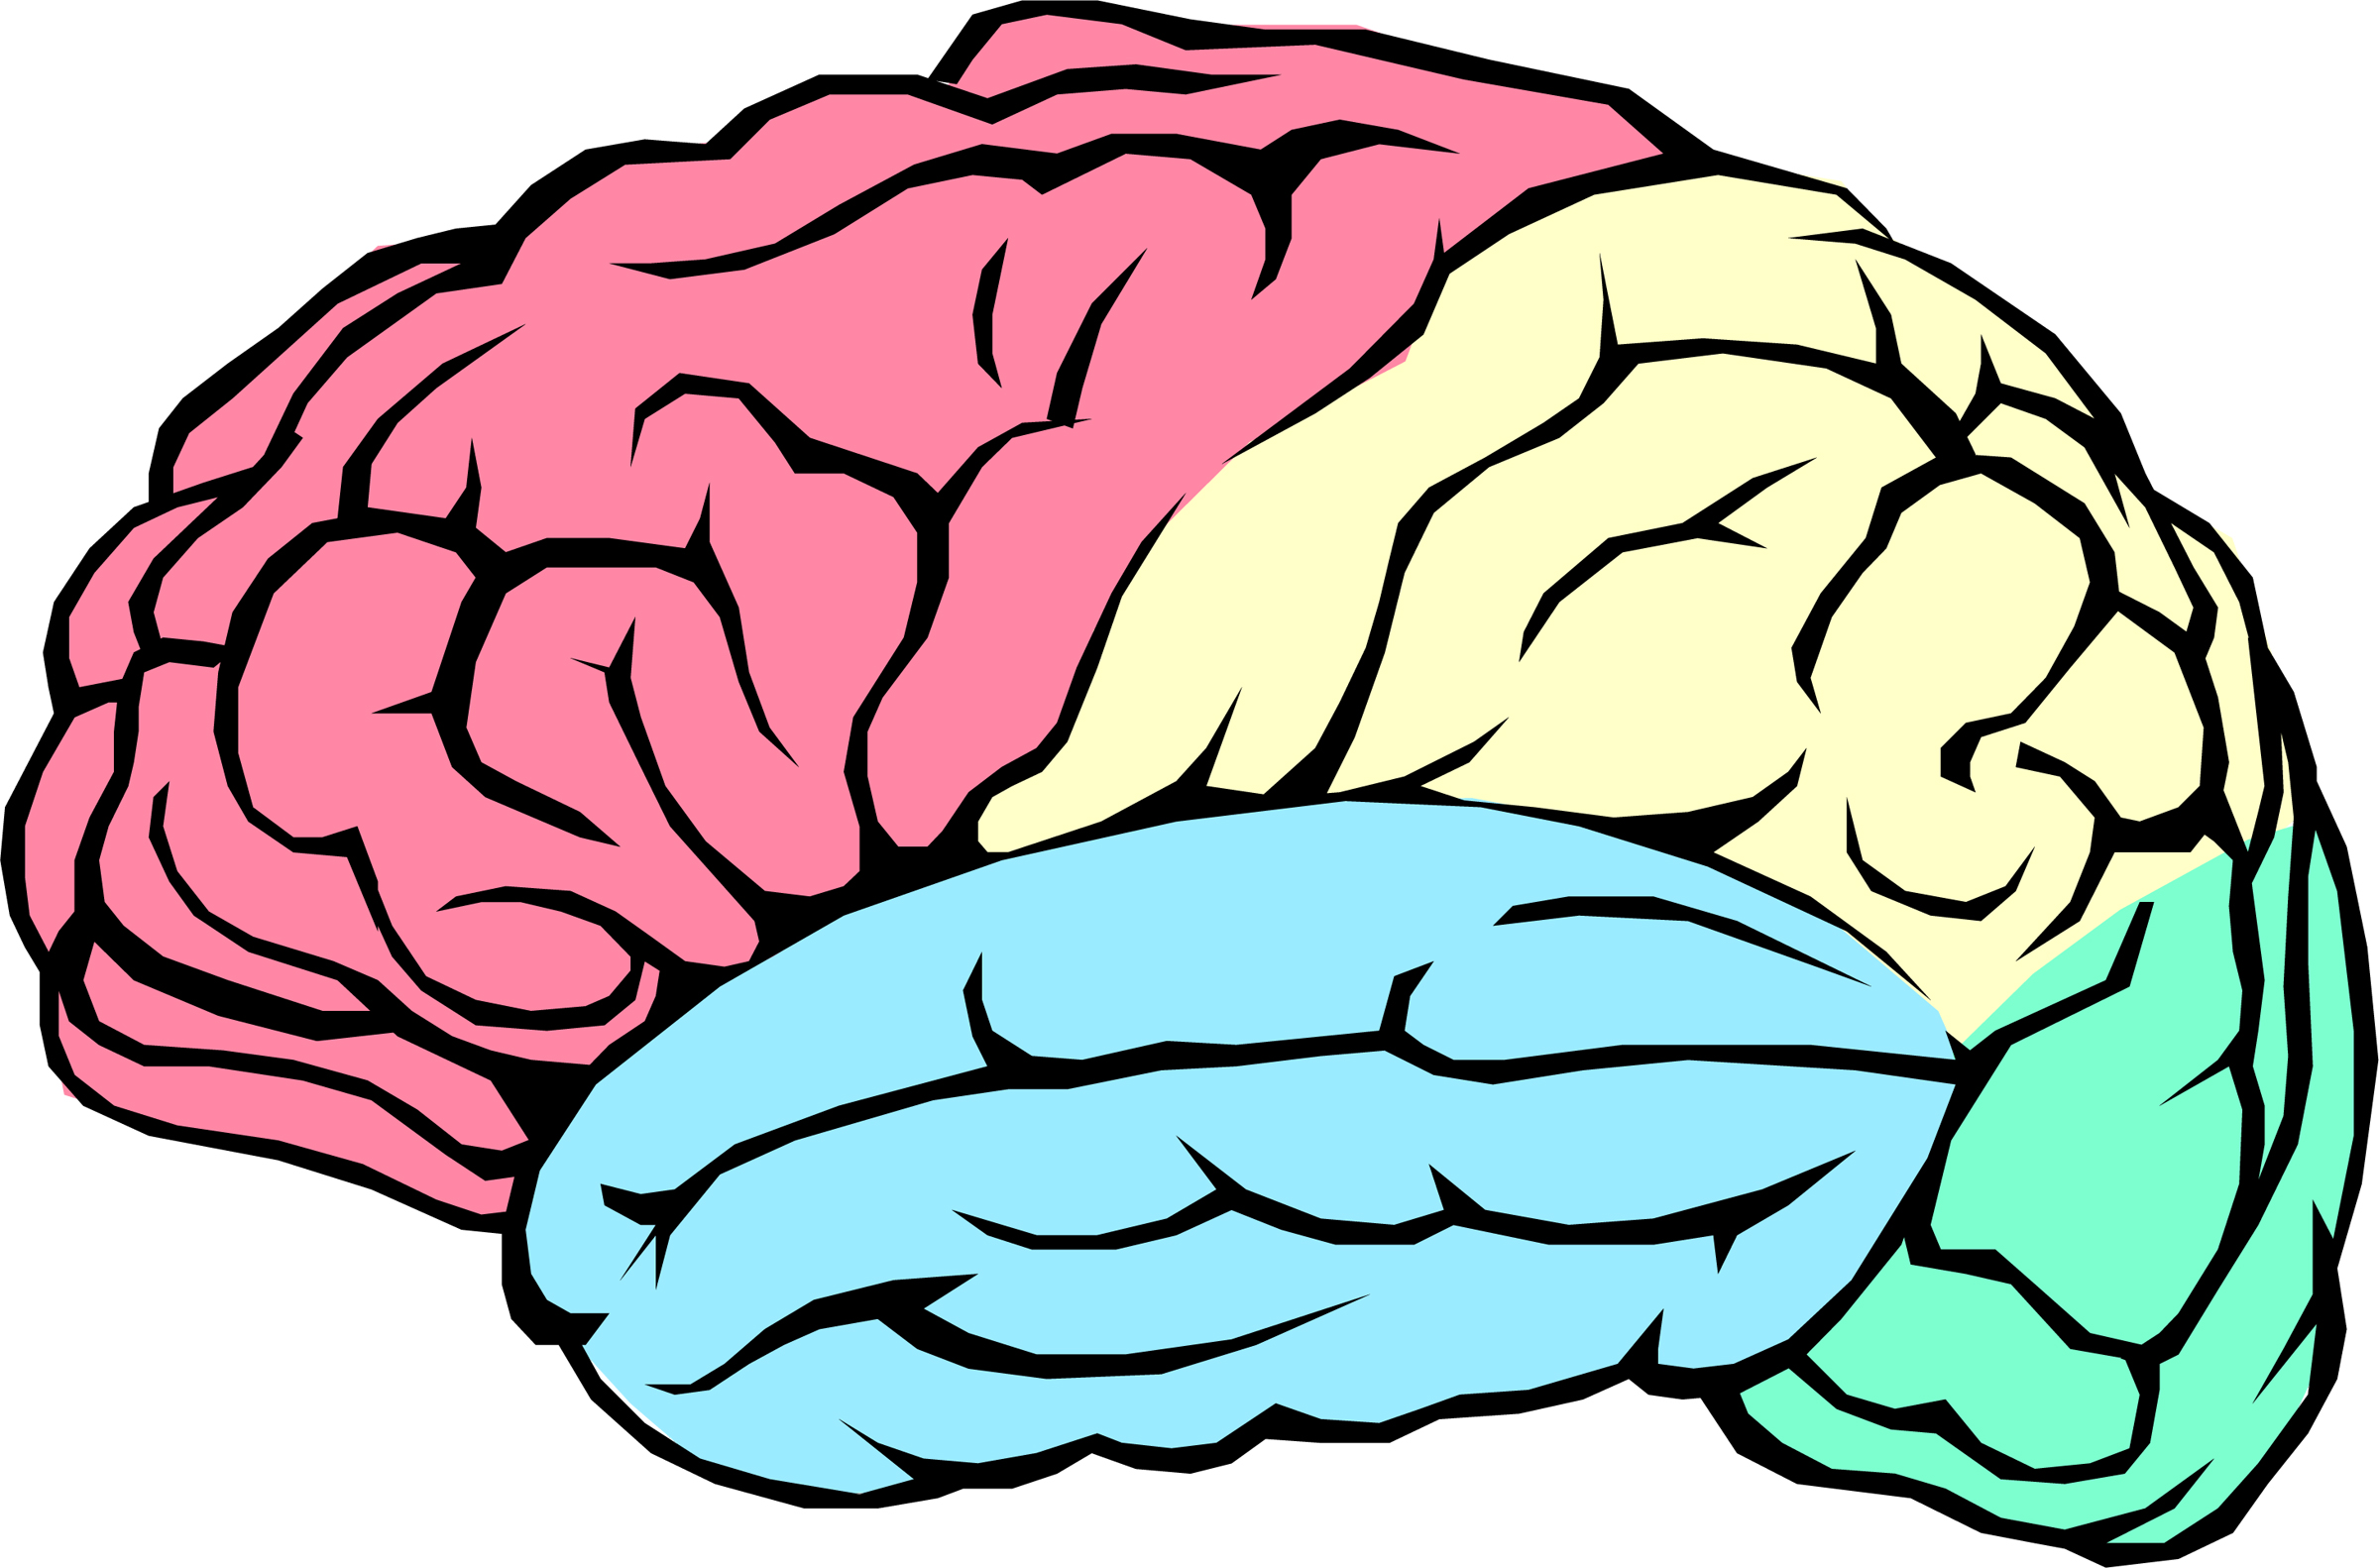 Images of Brain Images For Kids - #SpaceHero